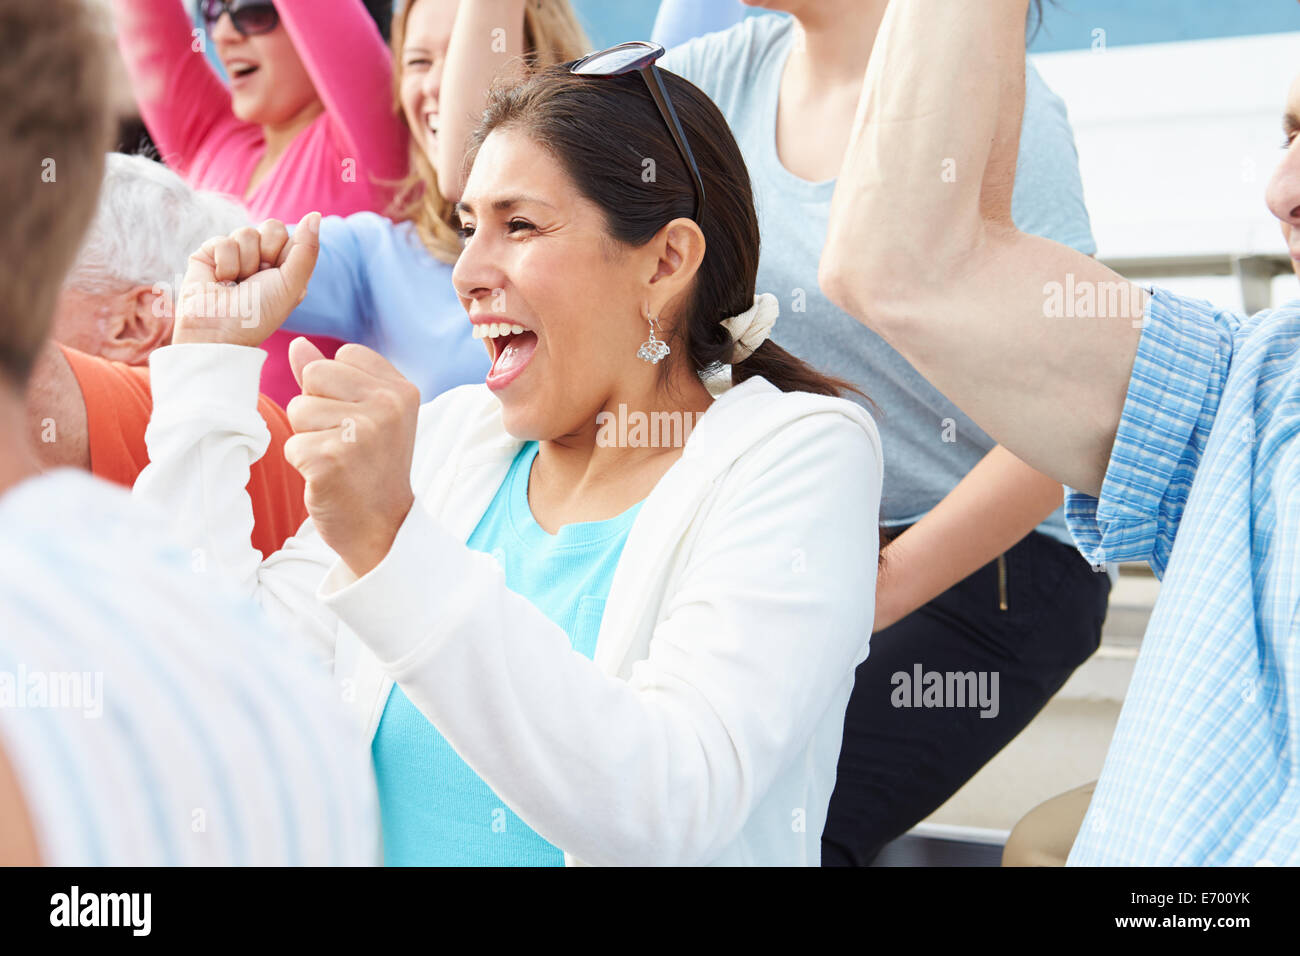 Woman In Crowd Celebrating At Sports Event - Stock Image